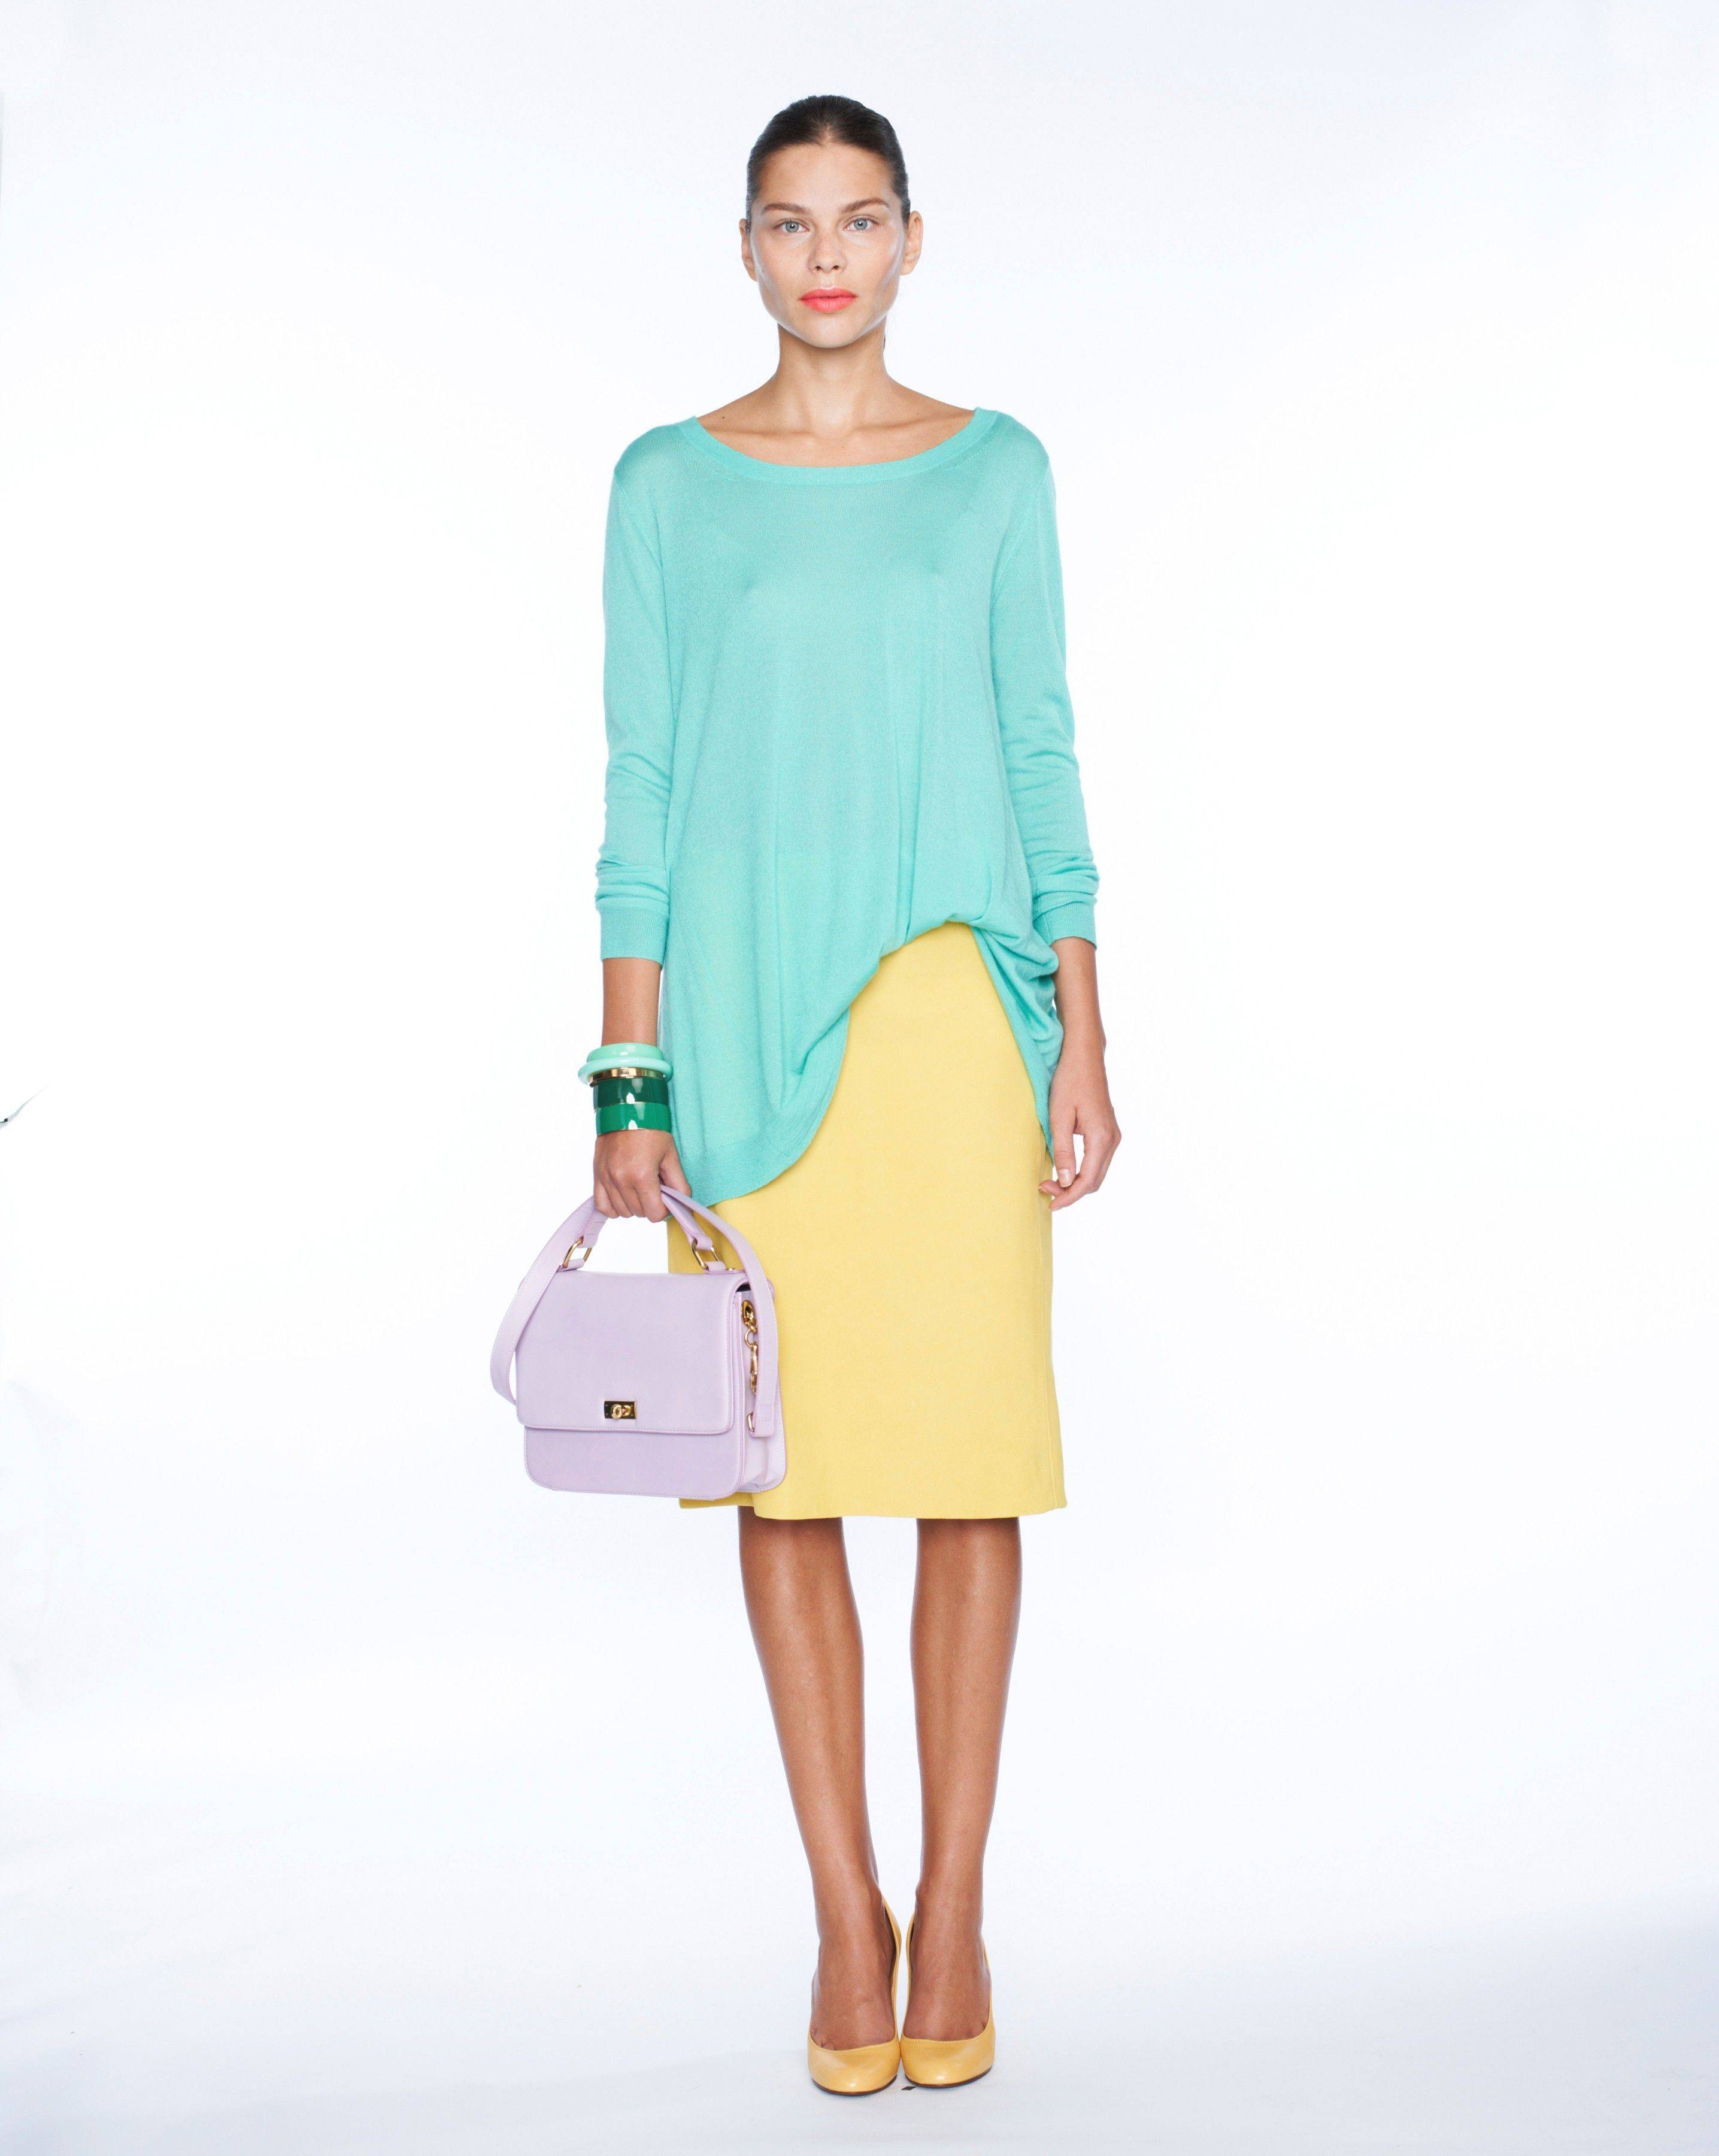 This undated photo courtesy of JCrew shows a look from the JCrew Spring 2012 line presented during Fashion Week in New York.